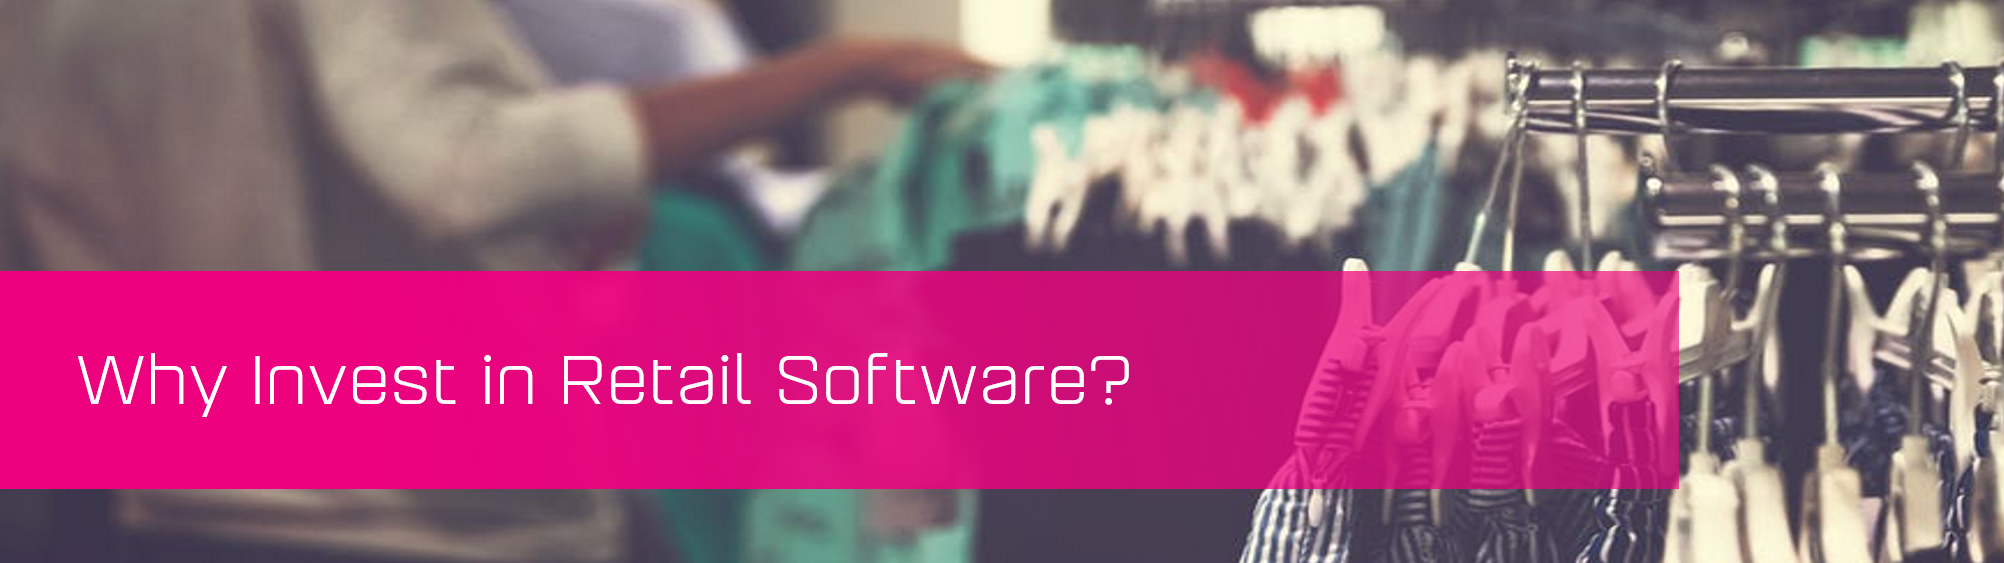 KCS SA - Blog - why invest in retail software banner